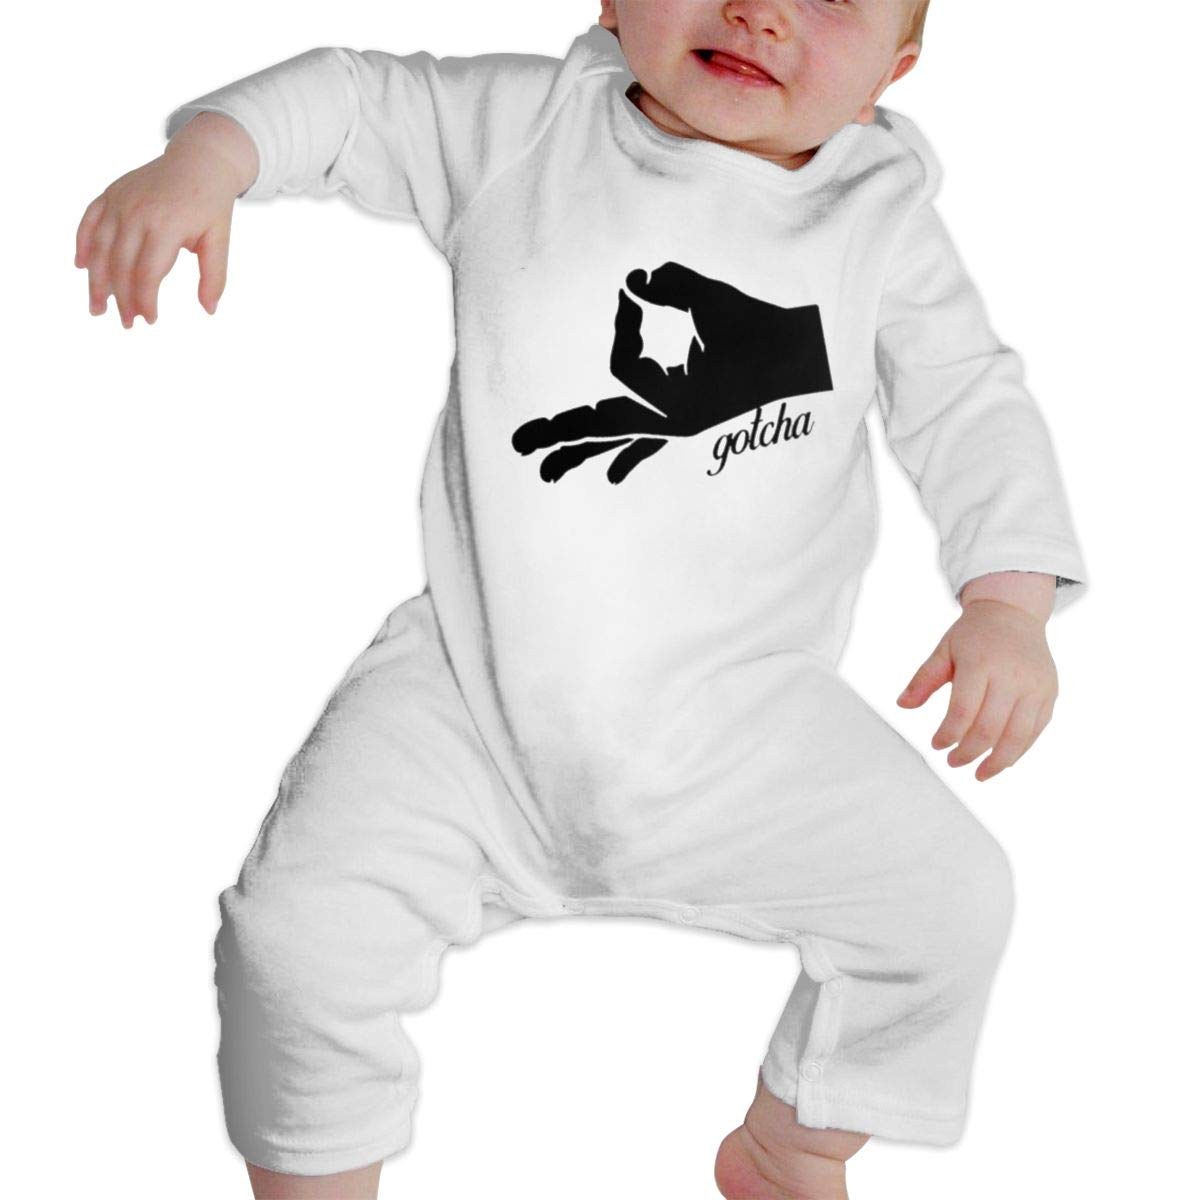 Gotcha Hand Newborn Baby Boy Girl Romper Jumpsuit Long Sleeve Bodysuit Overalls Outfits Clothes